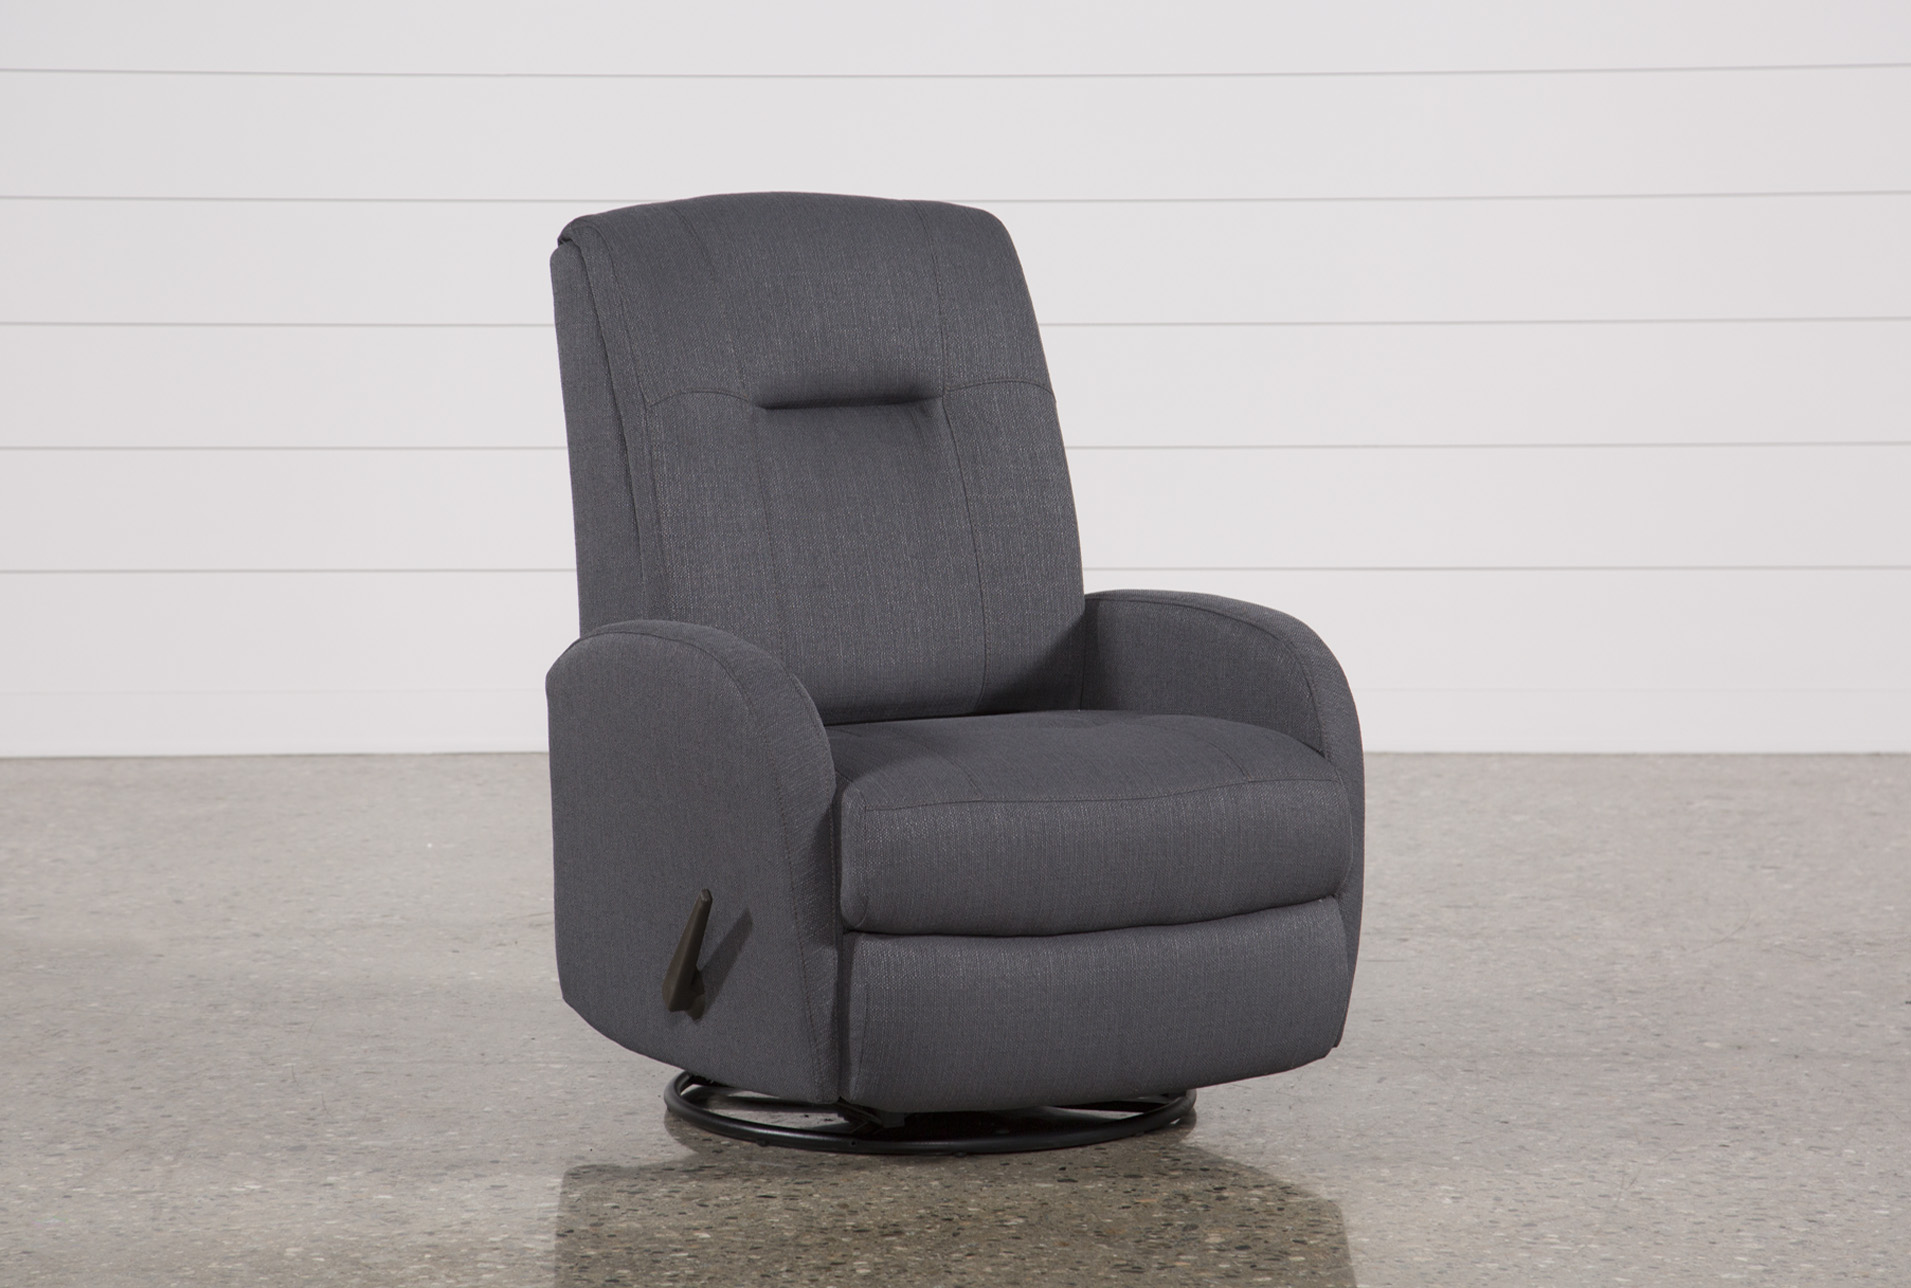 Swivel Rocker Recliner Chair Franco Iii Fabric Swivel Rocker Recliner